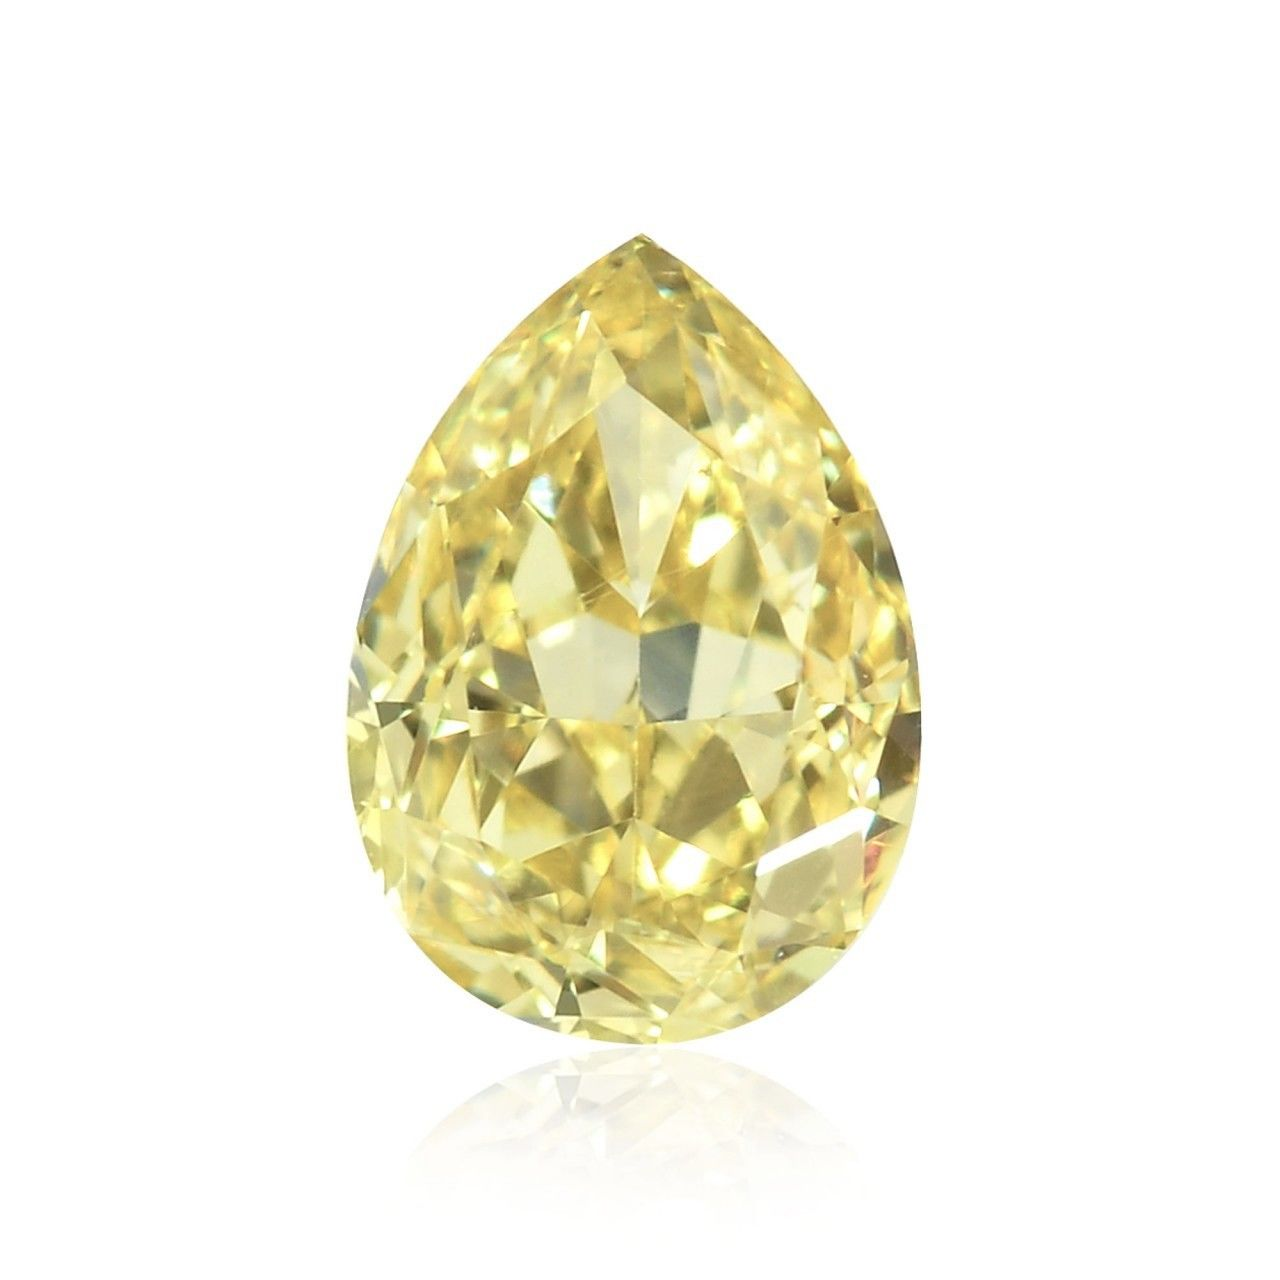 IF 1.51ct Natural Loose Fancy Light Yellow Diamond GIA Pear Shape Flawless